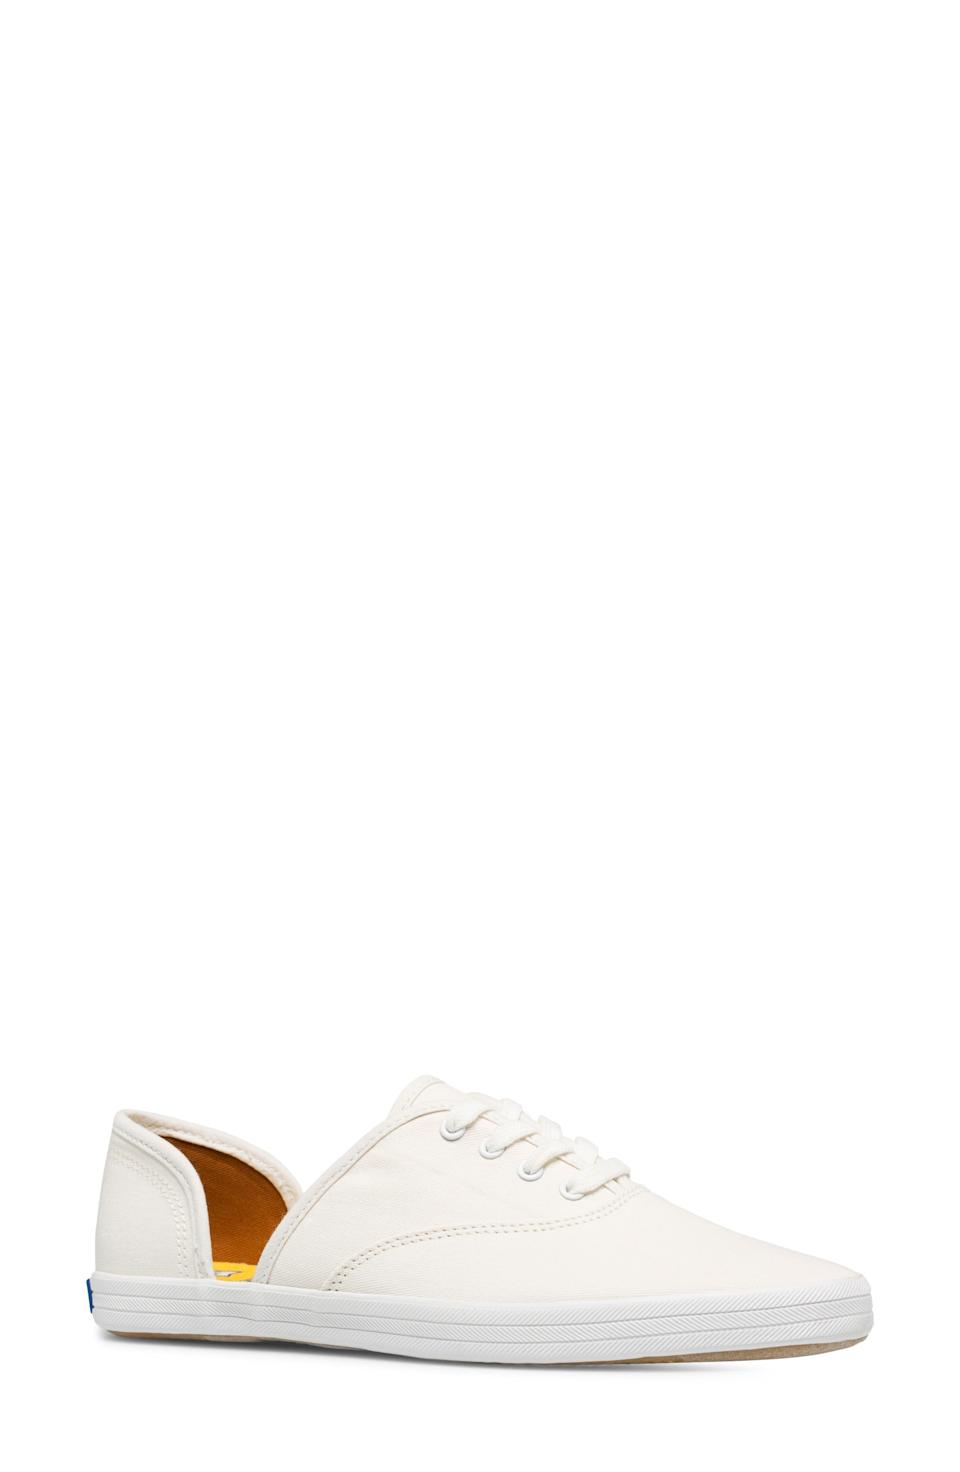 """<p><strong>Keds </strong></p><p>nordstrom.com</p><p><strong>$84.95</strong></p><p><a href=""""https://go.redirectingat.com?id=74968X1596630&url=https%3A%2F%2Fwww.nordstrom.com%2Fs%2Fkeds-vintage-champion-dorsay-sneaker-women%2F5583130&sref=https%3A%2F%2Fwww.townandcountrymag.com%2Fstyle%2Ffashion-trends%2Fg36200206%2Fsummer-shoes%2F"""" rel=""""nofollow noopener"""" target=""""_blank"""" data-ylk=""""slk:Shop Now"""" class=""""link rapid-noclick-resp"""">Shop Now</a></p><p>A d'Orsay cut adds a little something extra to a classic pair of white sneakers. </p><p><strong>More:</strong> <a href=""""https://www.townandcountrymag.com/style/g28073171/best-white-sneakers-for-women/"""" rel=""""nofollow noopener"""" target=""""_blank"""" data-ylk=""""slk:The Best White Sneakers"""" class=""""link rapid-noclick-resp"""">The Best White Sneakers</a></p>"""